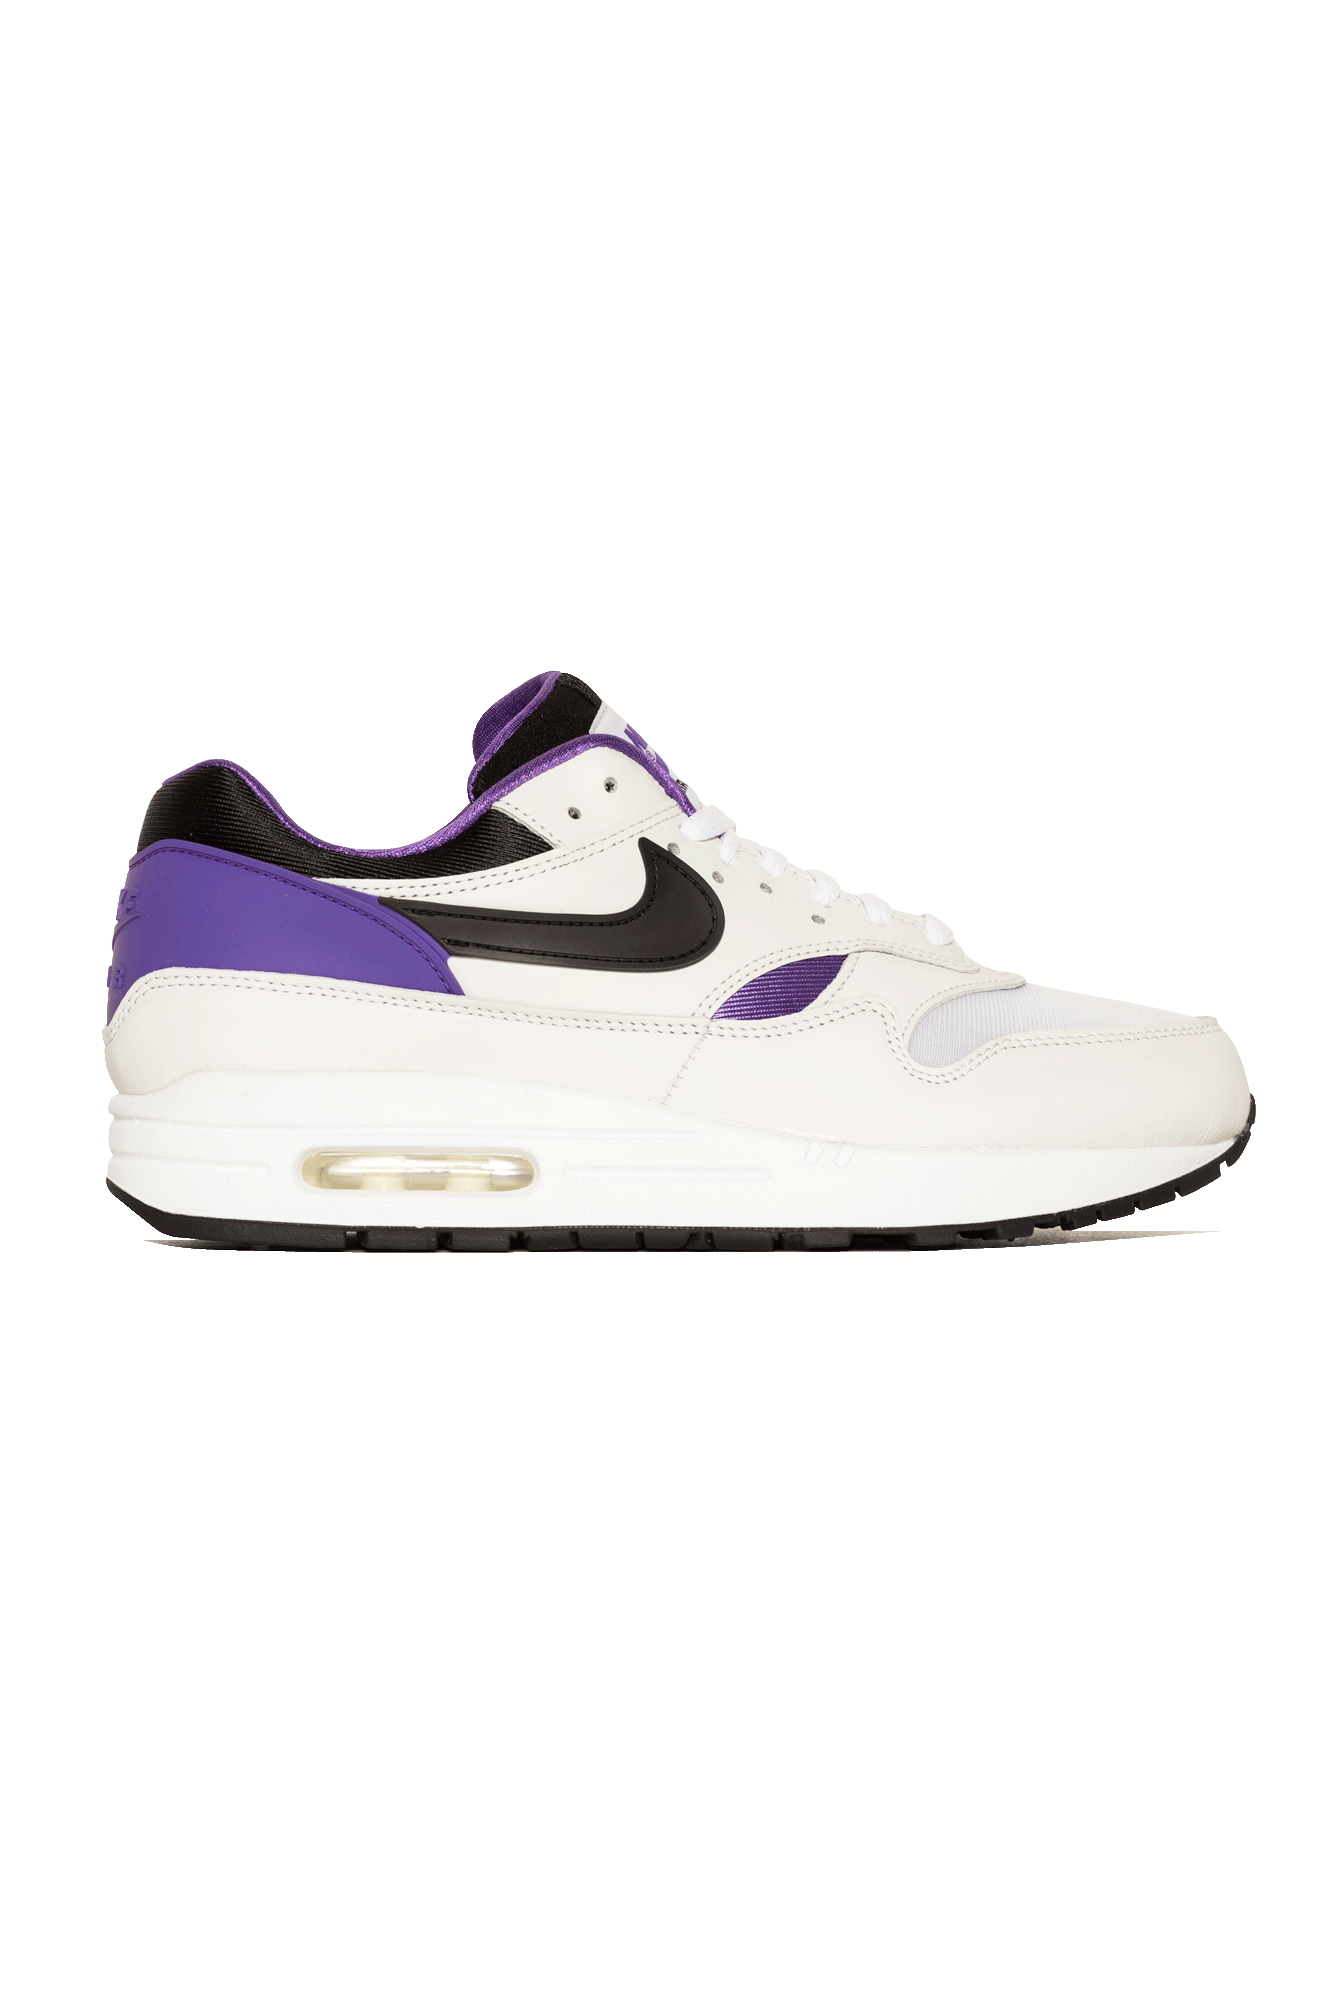 Nike Sneakers Air Max 1 DNA CH. 1 Bianco AR3863-#000#101#4 - One Block Down